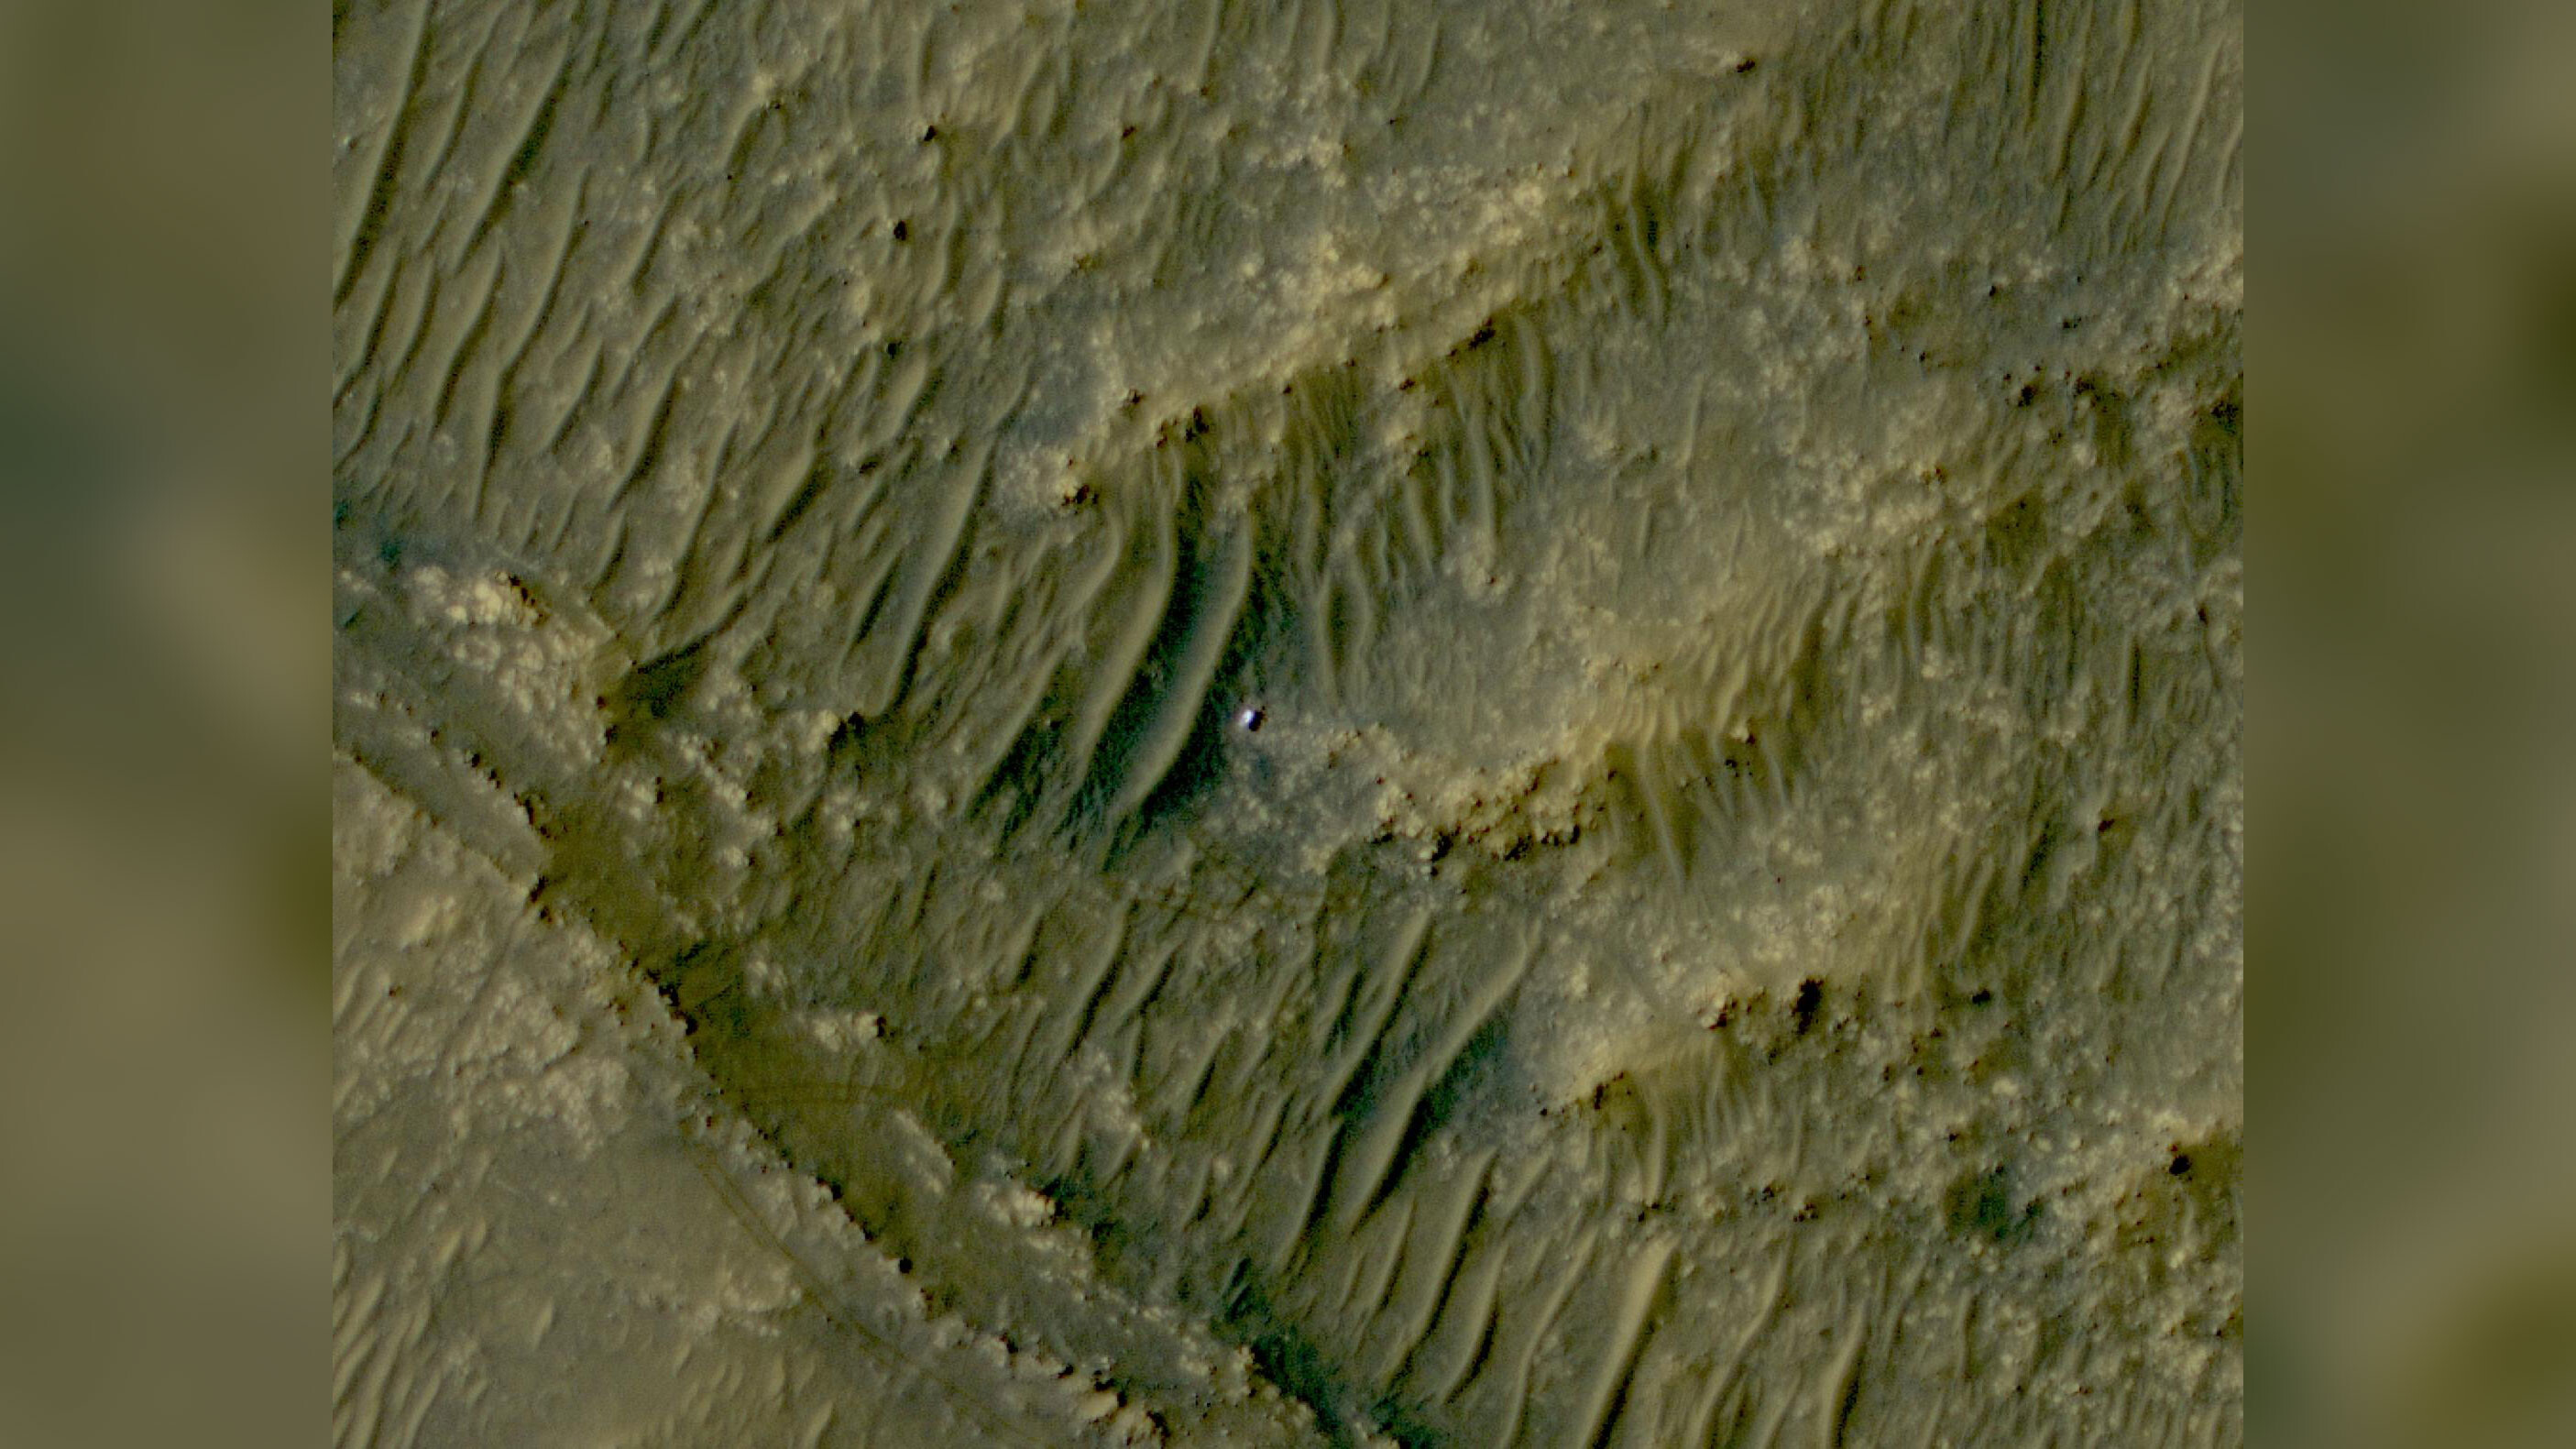 This solar event will halt communication with Mars missions for 2 weeks